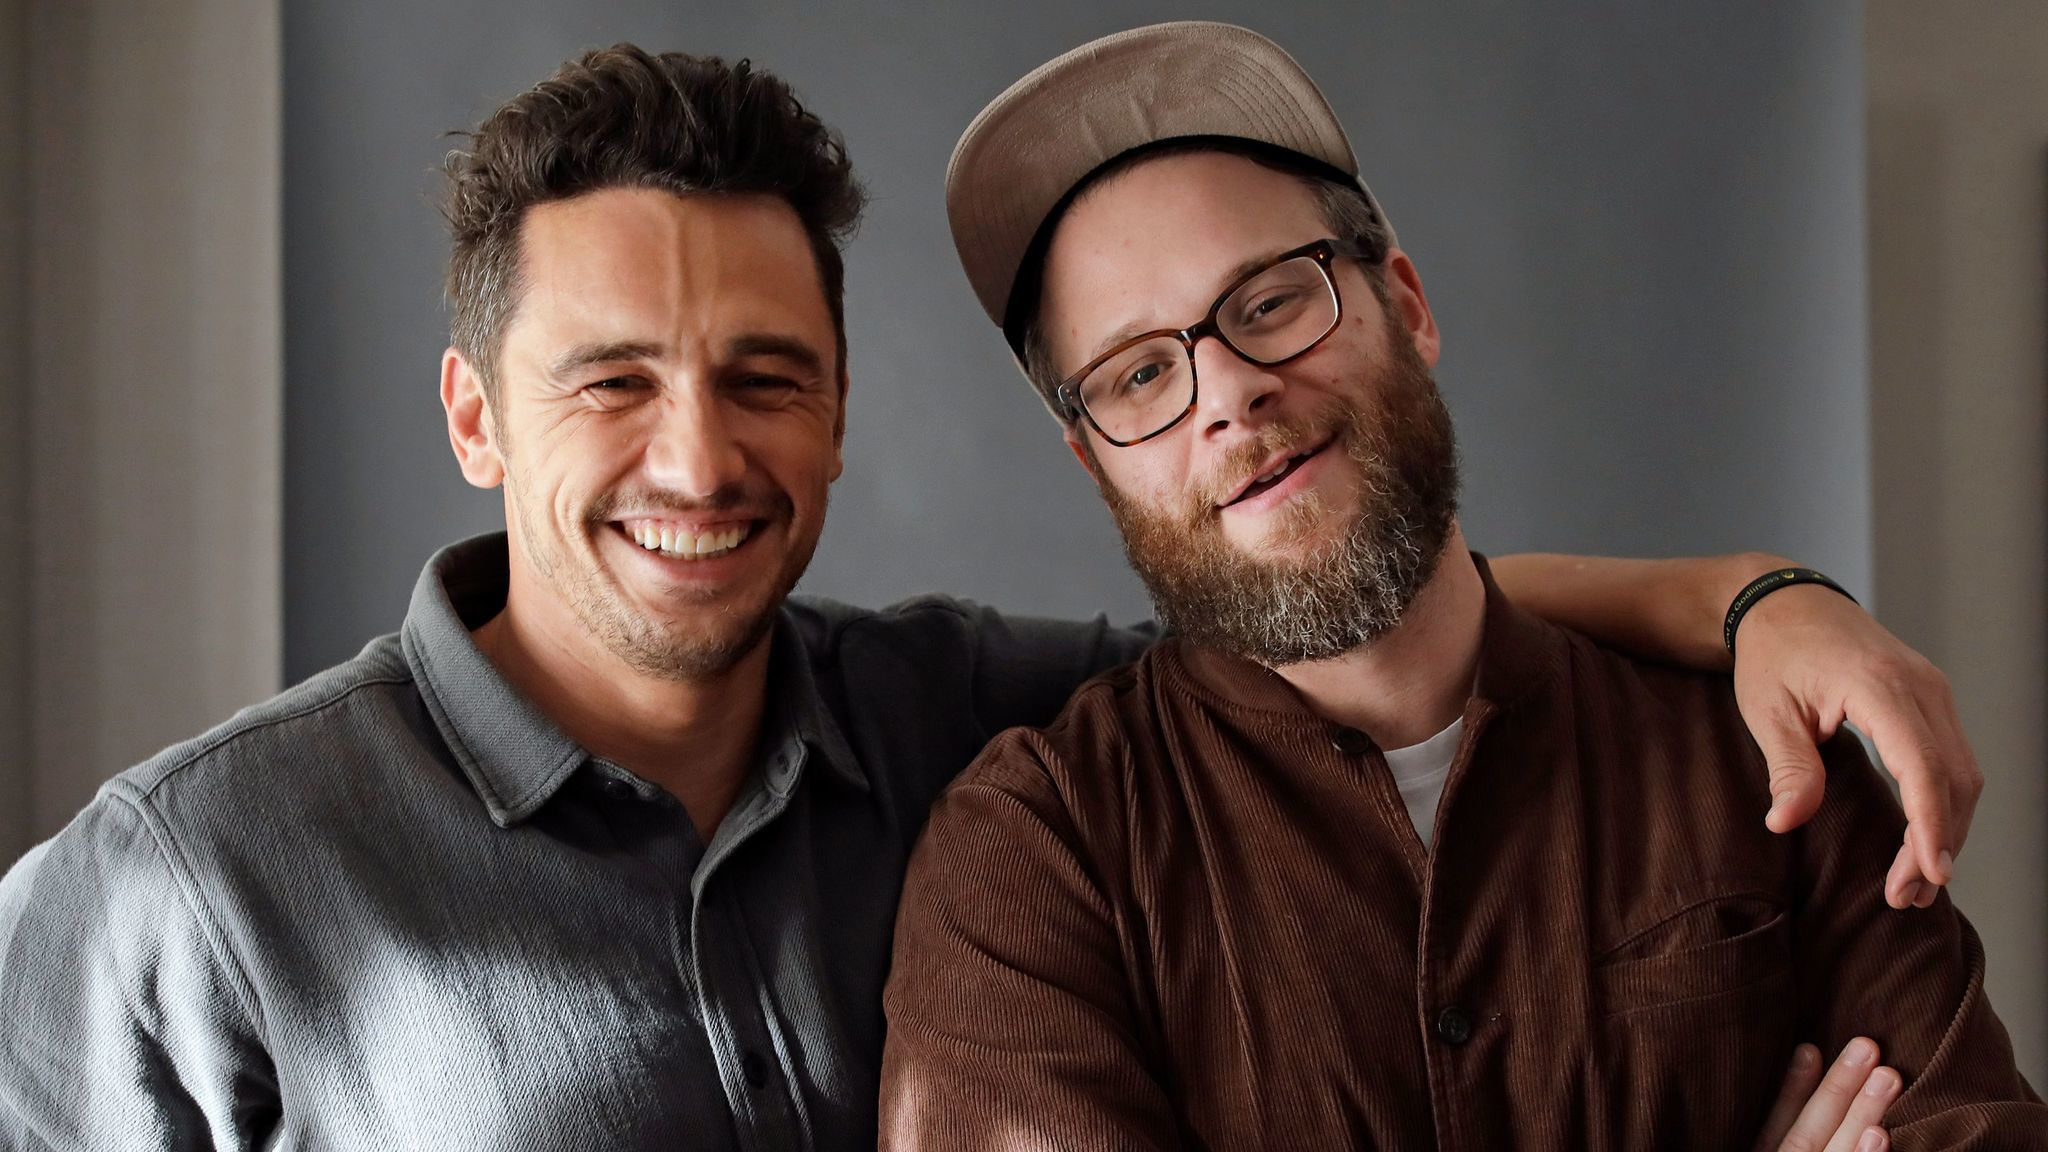 latimes.com - Jen Yamato - How 'Disaster Artist's' James Franco found art and heart in 'The Room,' the 'Citizen Kane' of bad movies